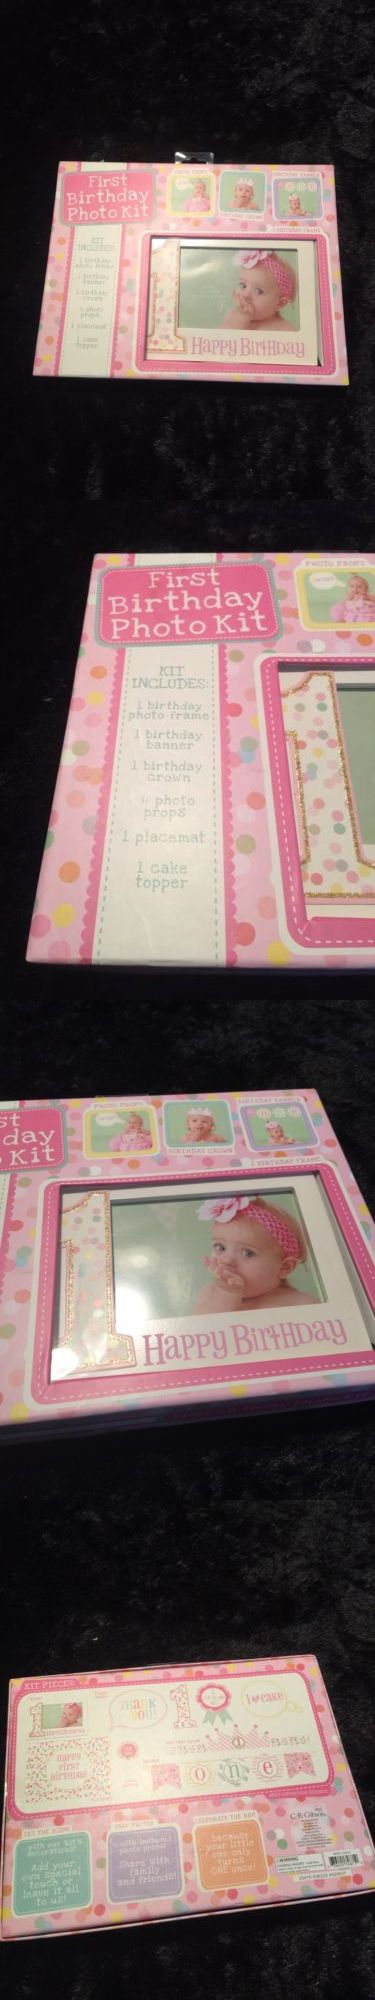 Baby Books and Albums 117389: Cr Gibson Baby Girls Pink First Birthday Photo Kit Crown Props Cake Topper -> BUY IT NOW ONLY: $34.98 on eBay!